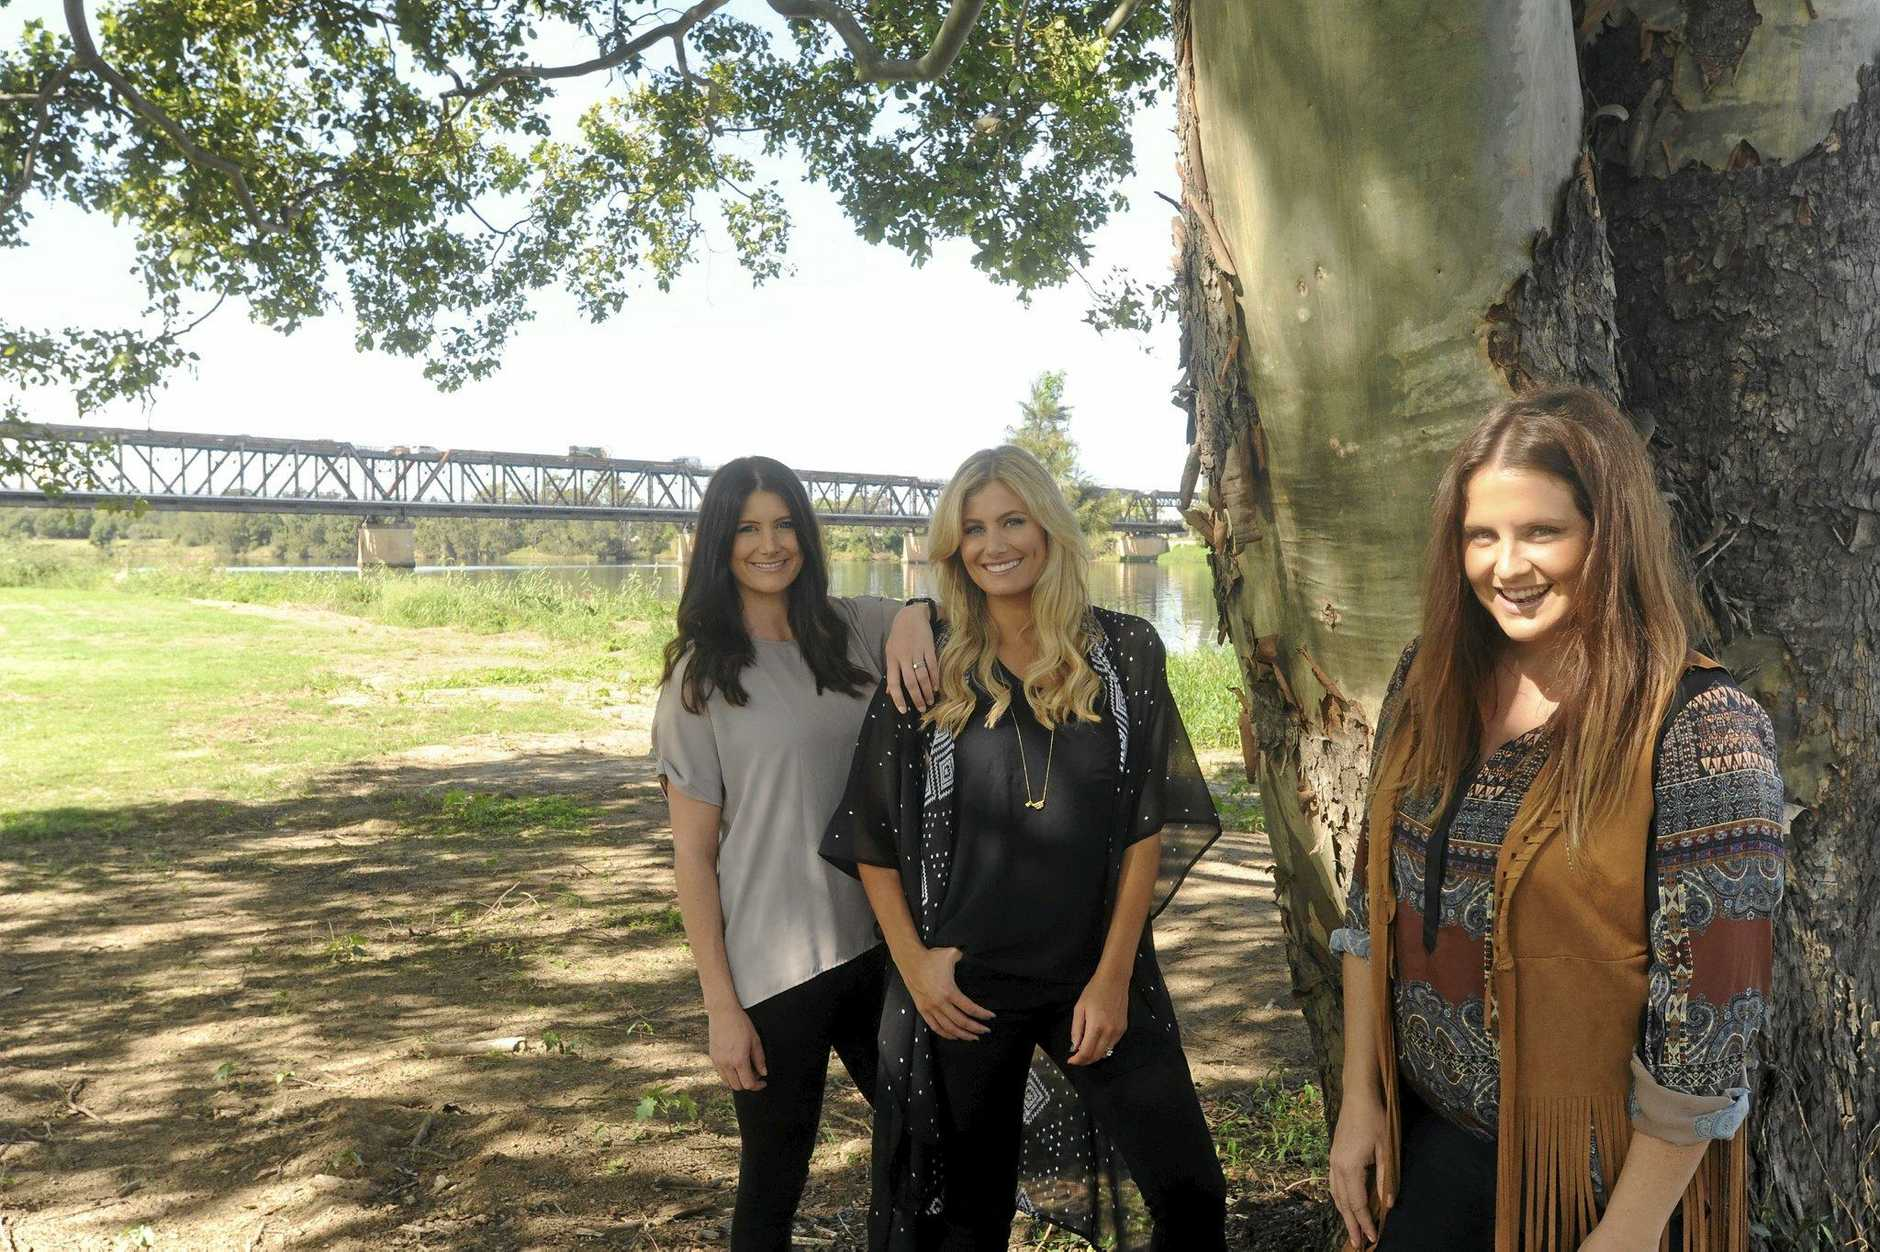 THE McCLYMONTS: Mollie, Sam and Brooke are gearing up to write their next album.